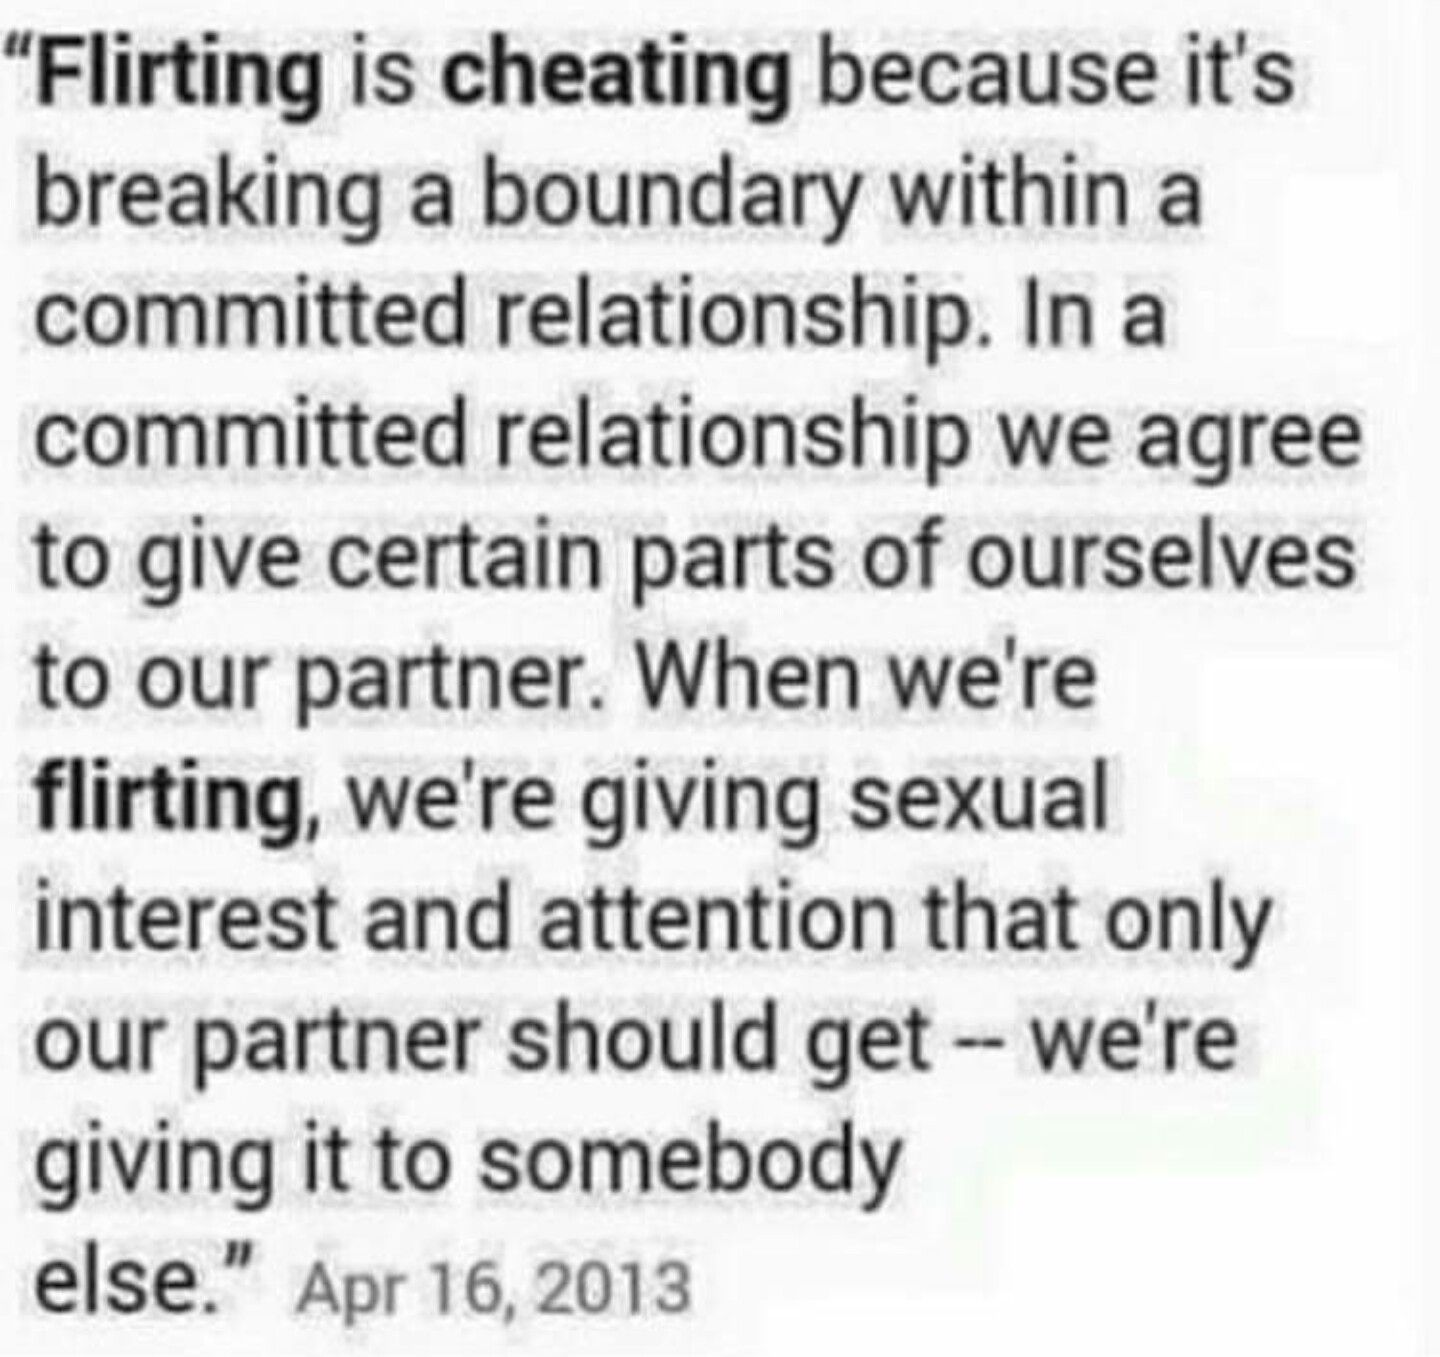 More Cheating Quotes Flirting Quotes Funny Boyfriend Quotes